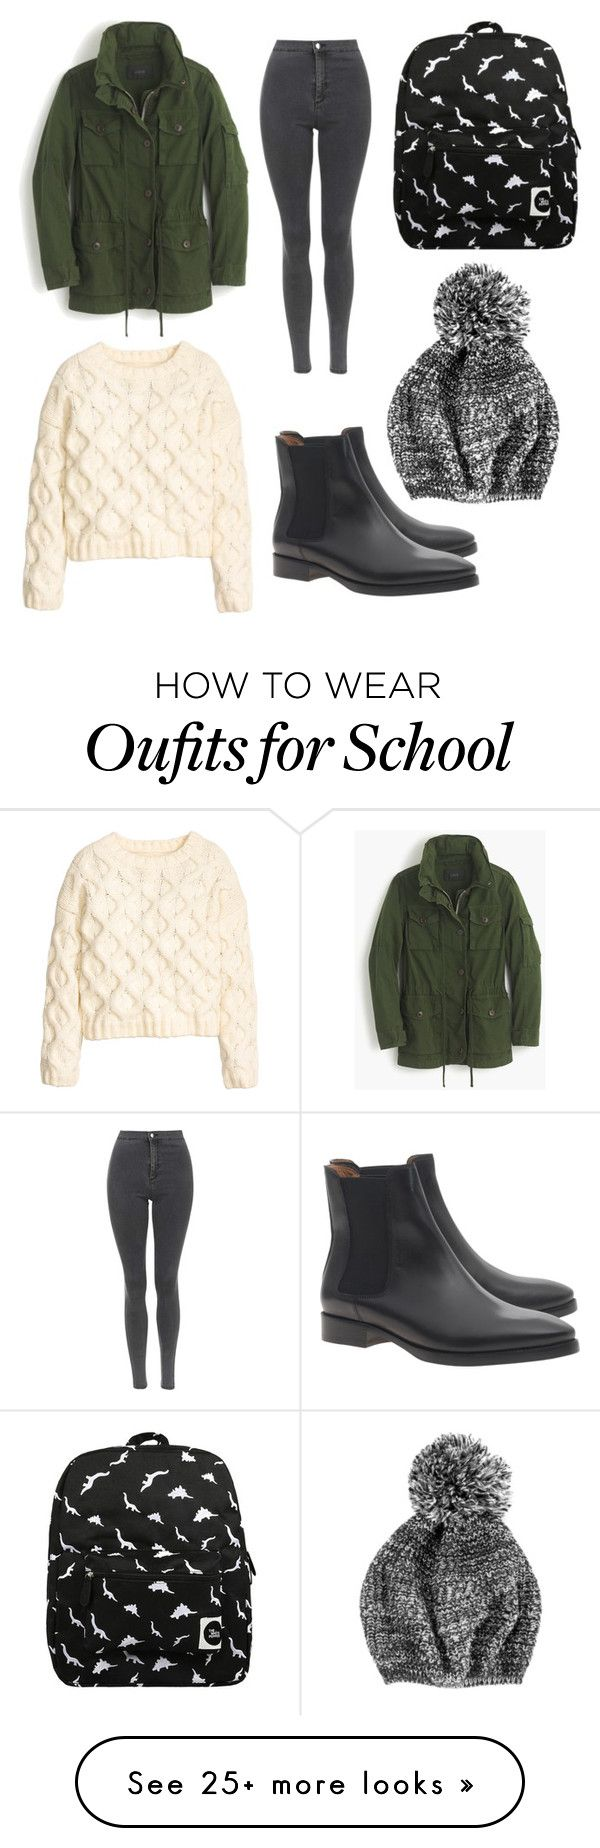 """""""School"""" by krystaltk8 on Polyvore featuring J.Crew, H&M, Topshop, Acne Studios and Forever 21"""